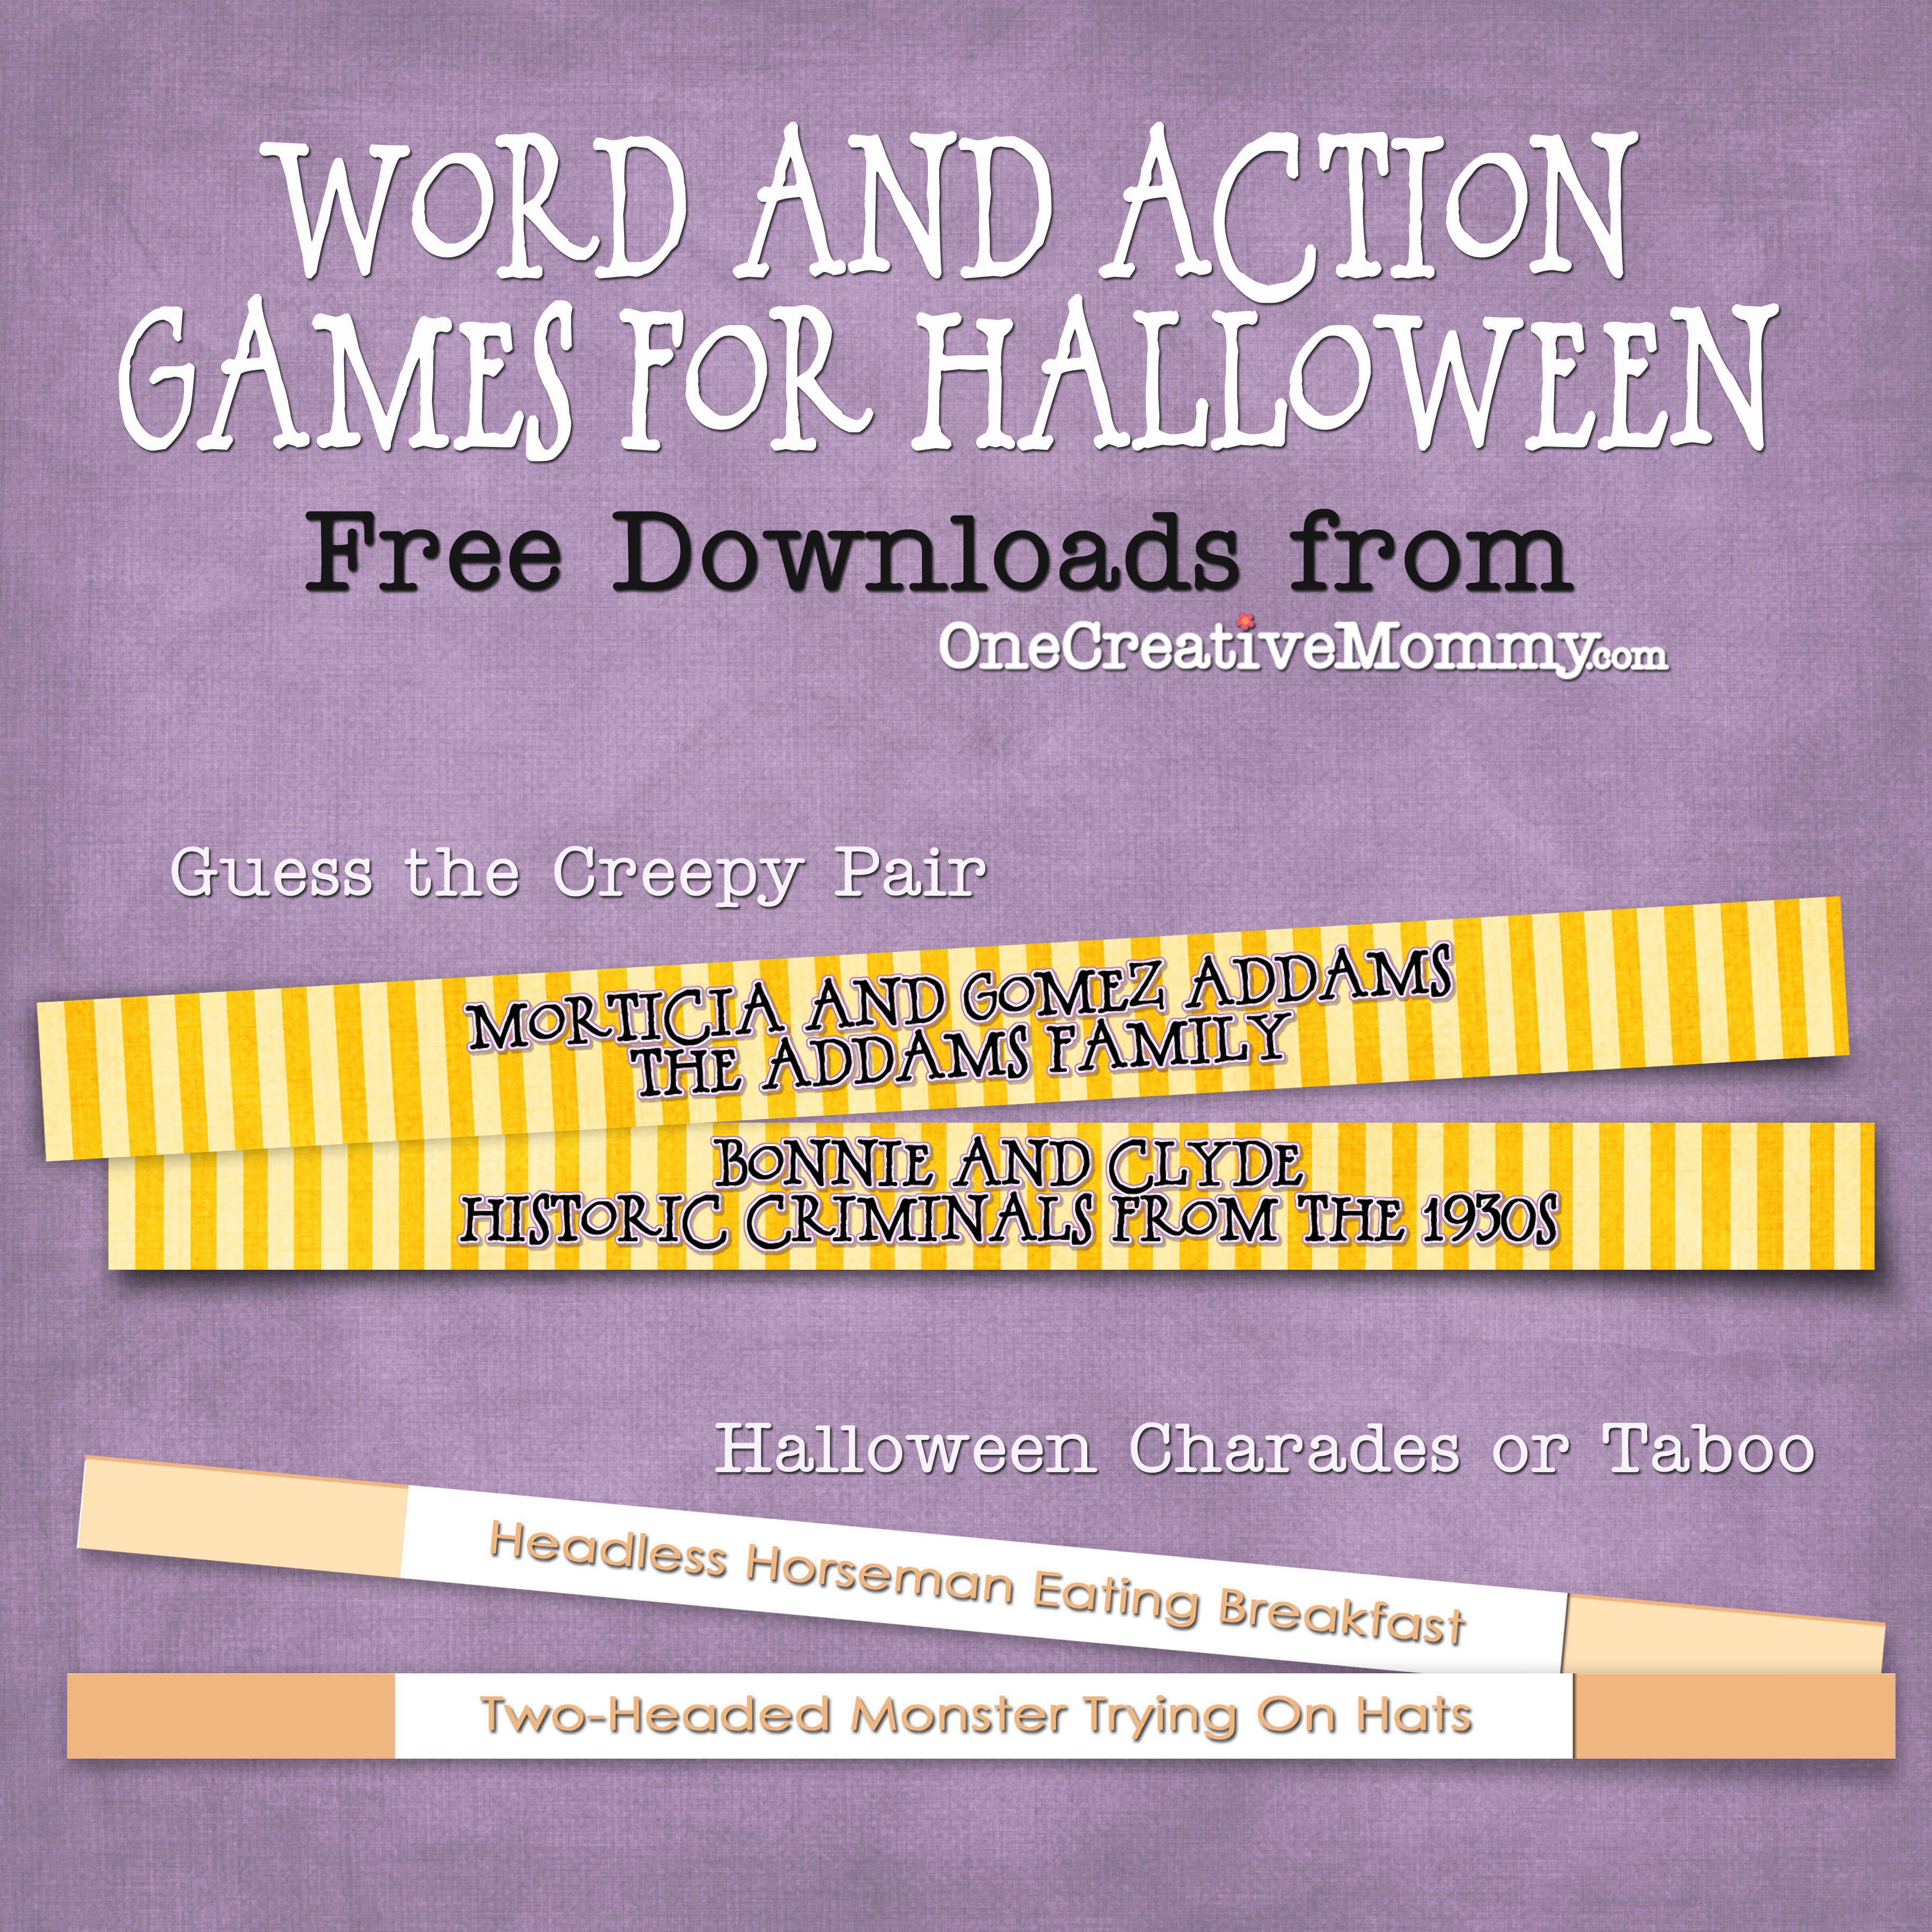 Halloween Party Games for Kids and Grownups, too! - onecreativemommy.com